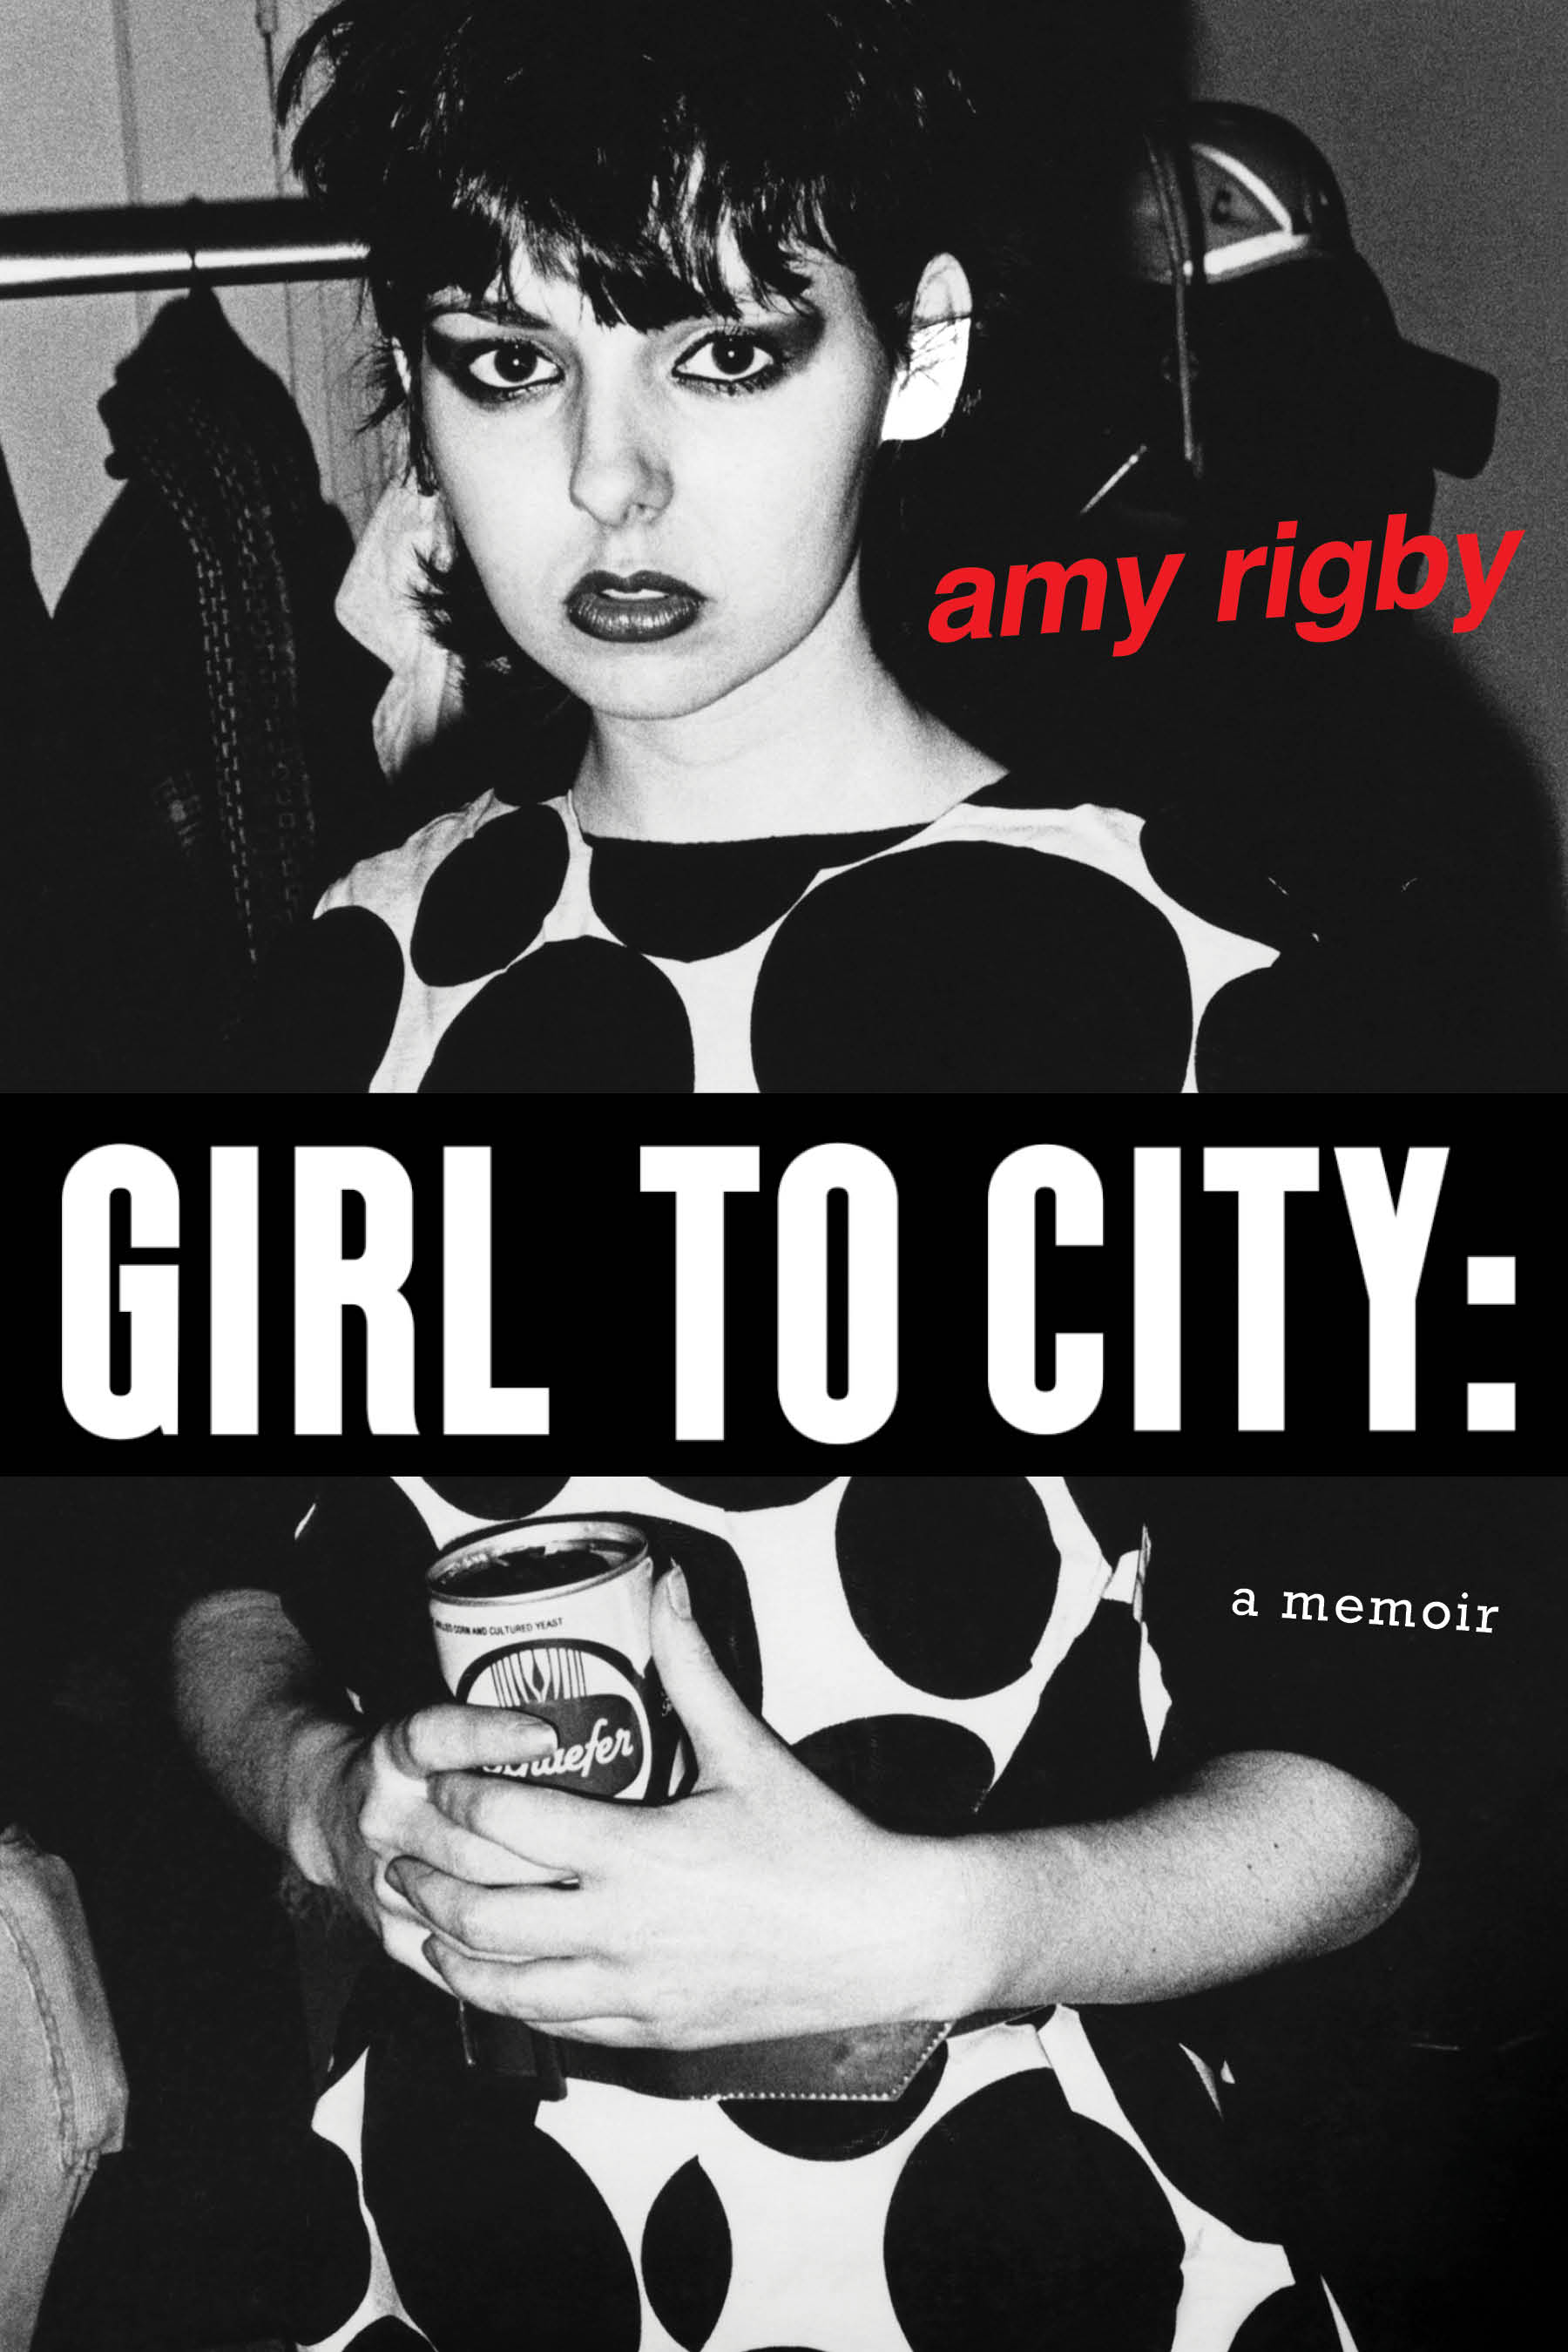 amy rigby cover 6.jpg